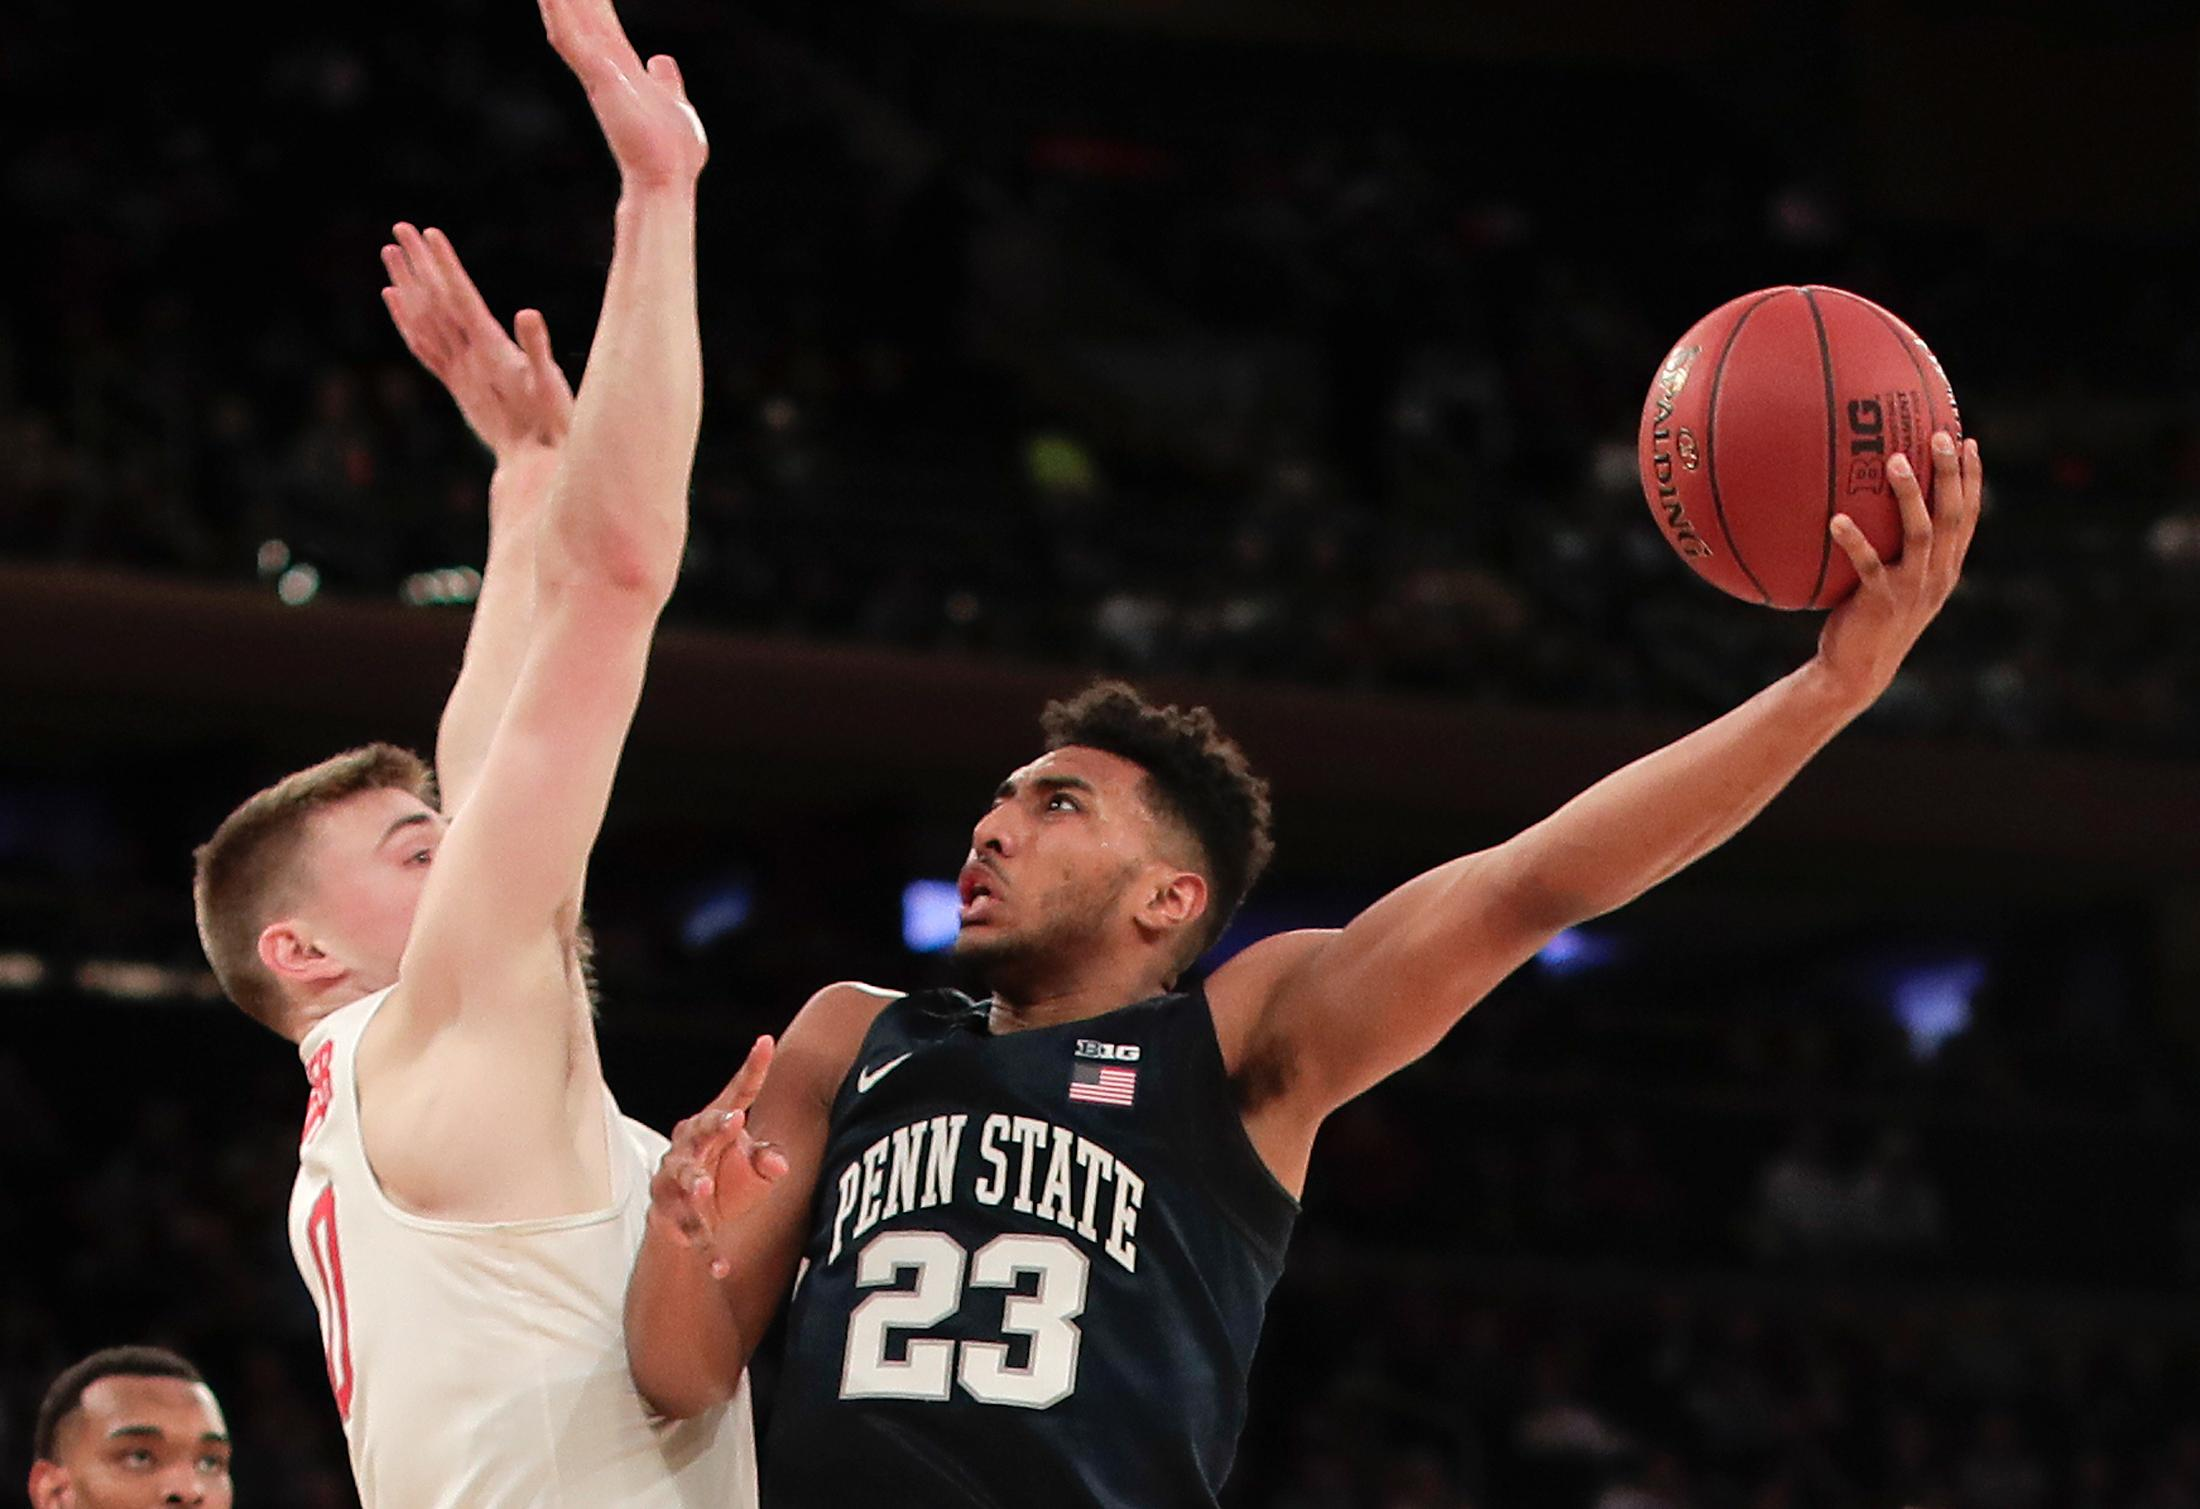 Penn State guard Josh Reaves (23) puts up a shot against Ohio State center Micah Potter (0) during the second half of an NCAA Big Ten Conference tournament college basketball game, Friday, March 2, 2018, in New York. Penn State won 69-68. (AP Photo/Julie Jacobson)